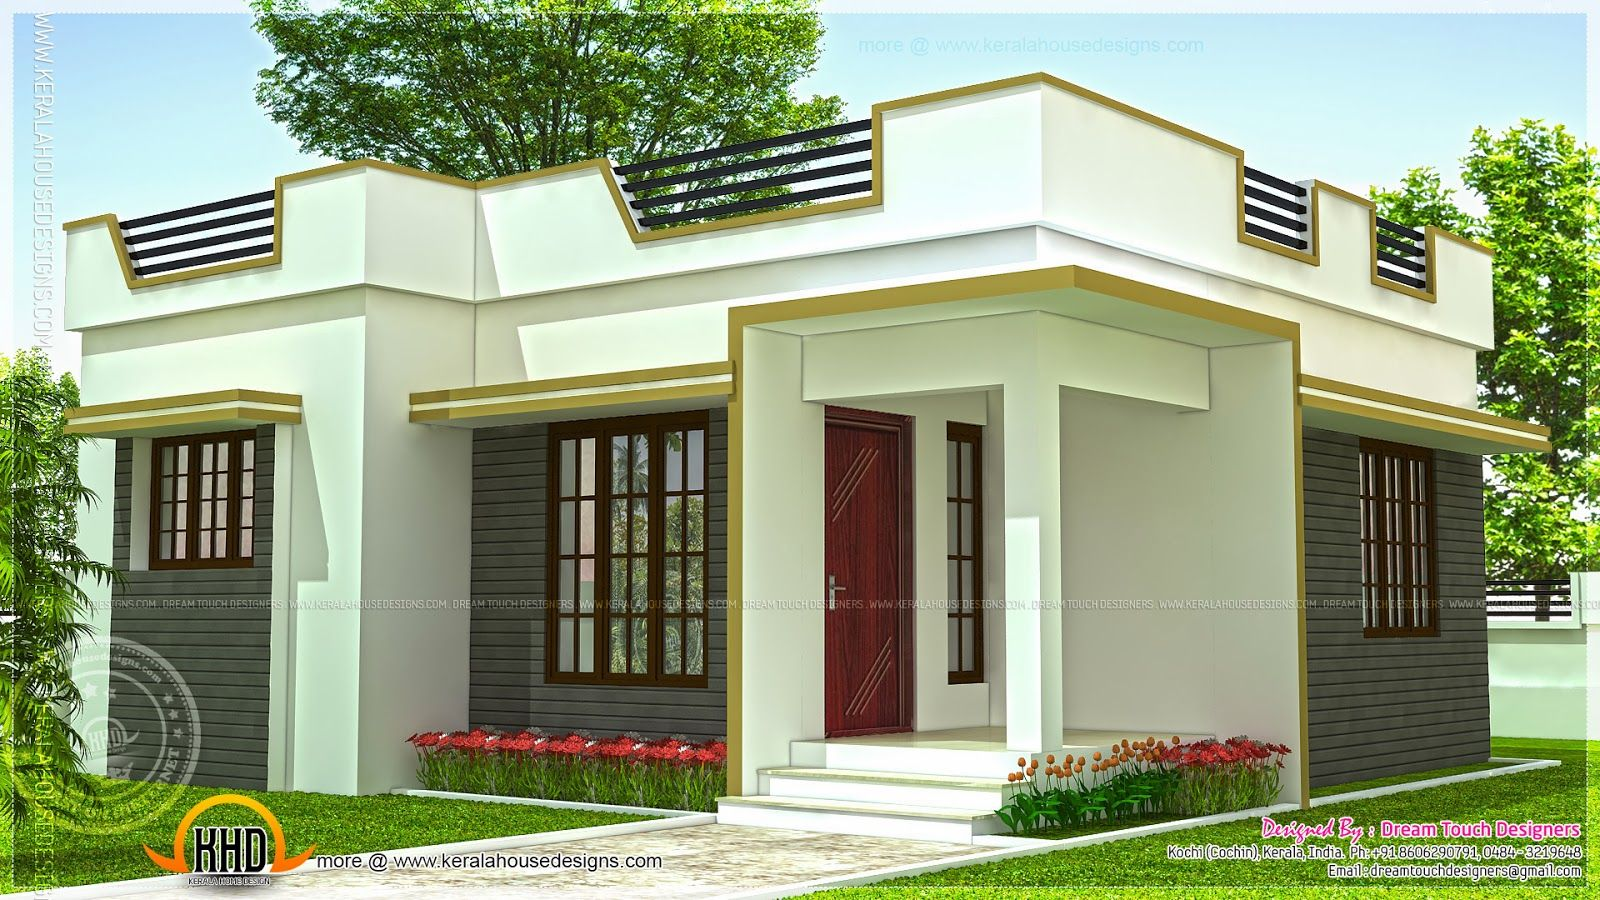 Lately 21 small house design kerala small house Small indian home designs photos